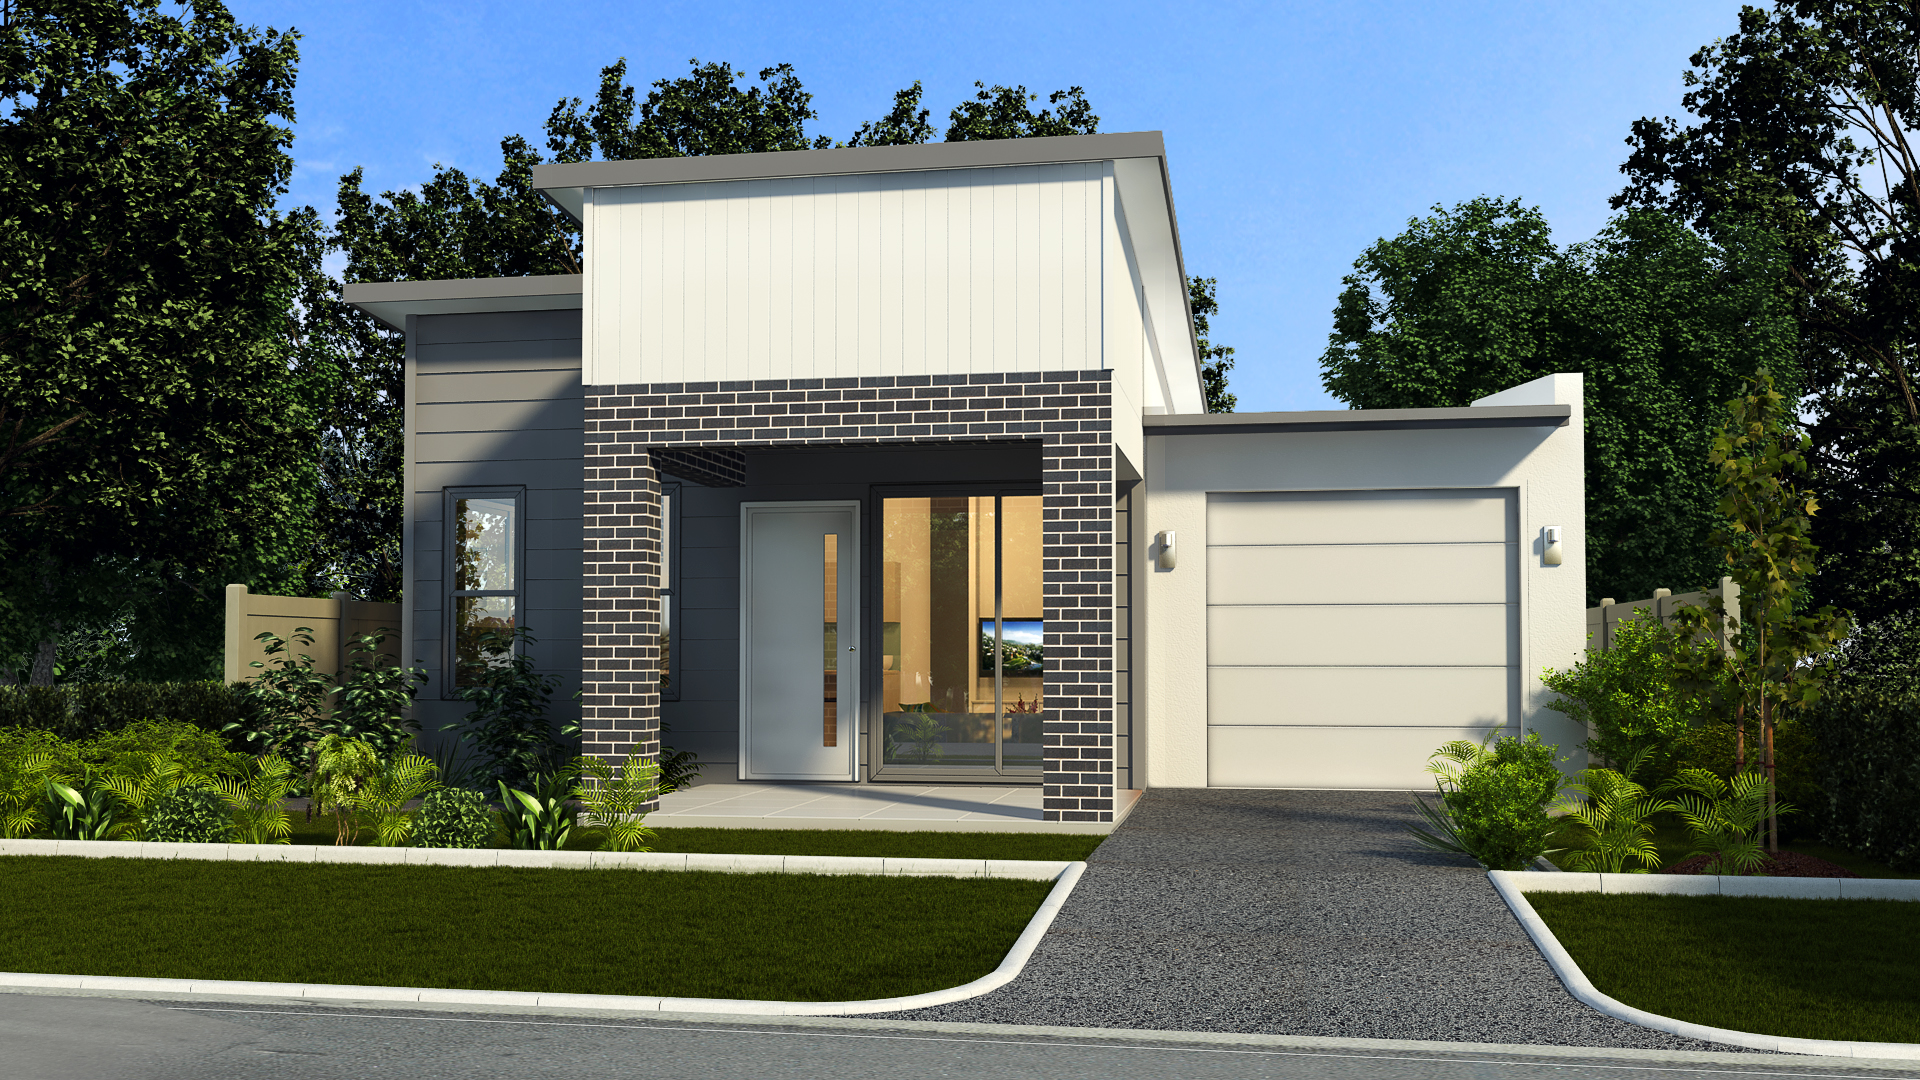 The Clan - 2 Bed | 2 Bath | 2 Car Garage10m Urban Lots